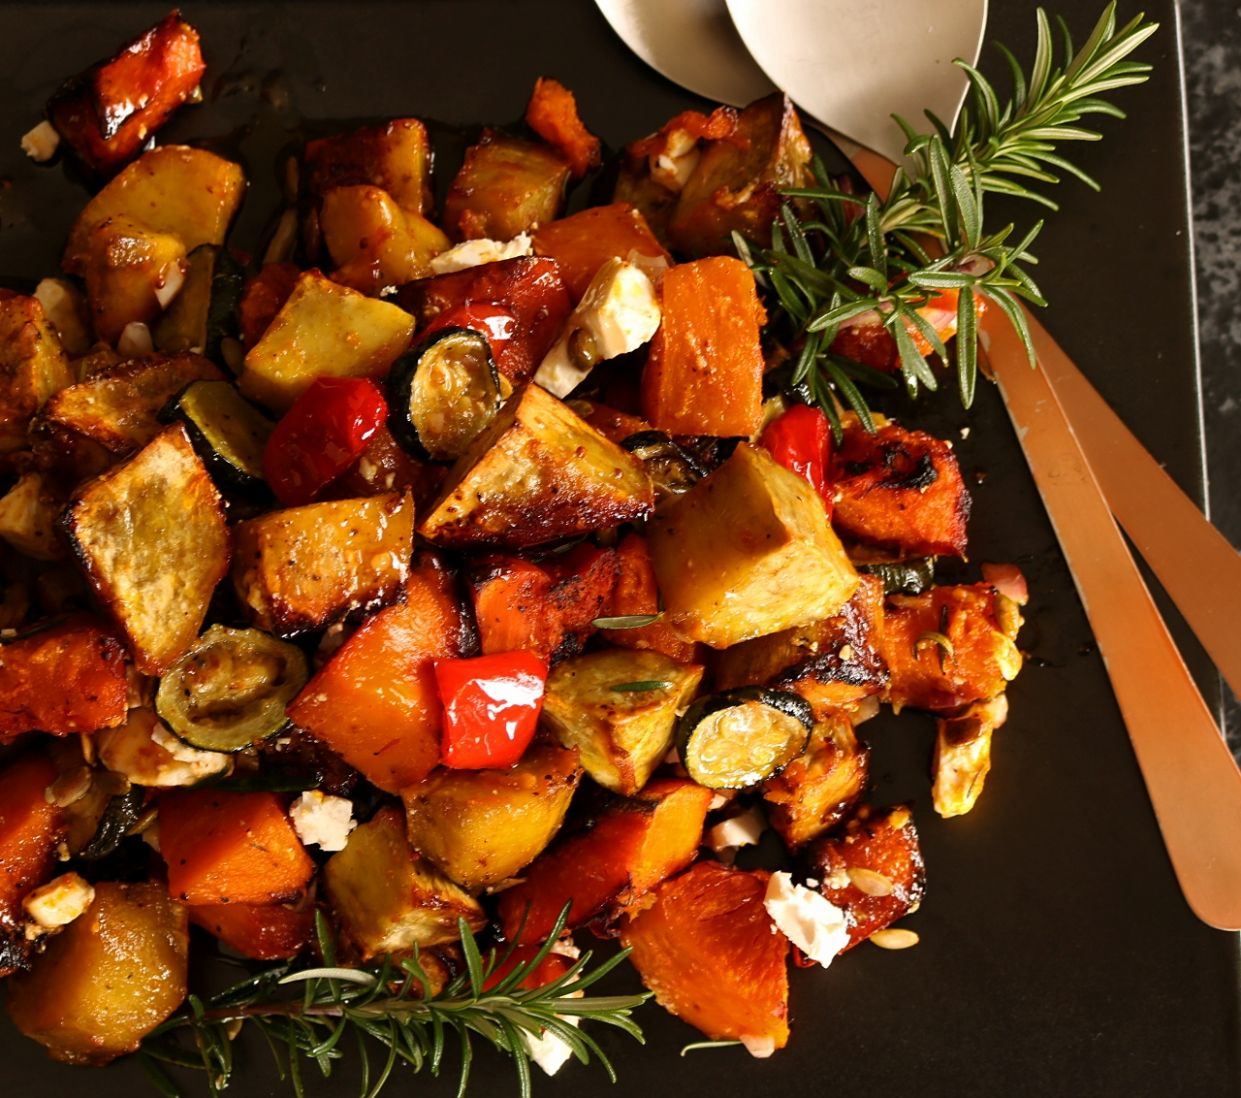 Roast Vegetable Salad with Maple Dressing - Vegetable Recipes Nz